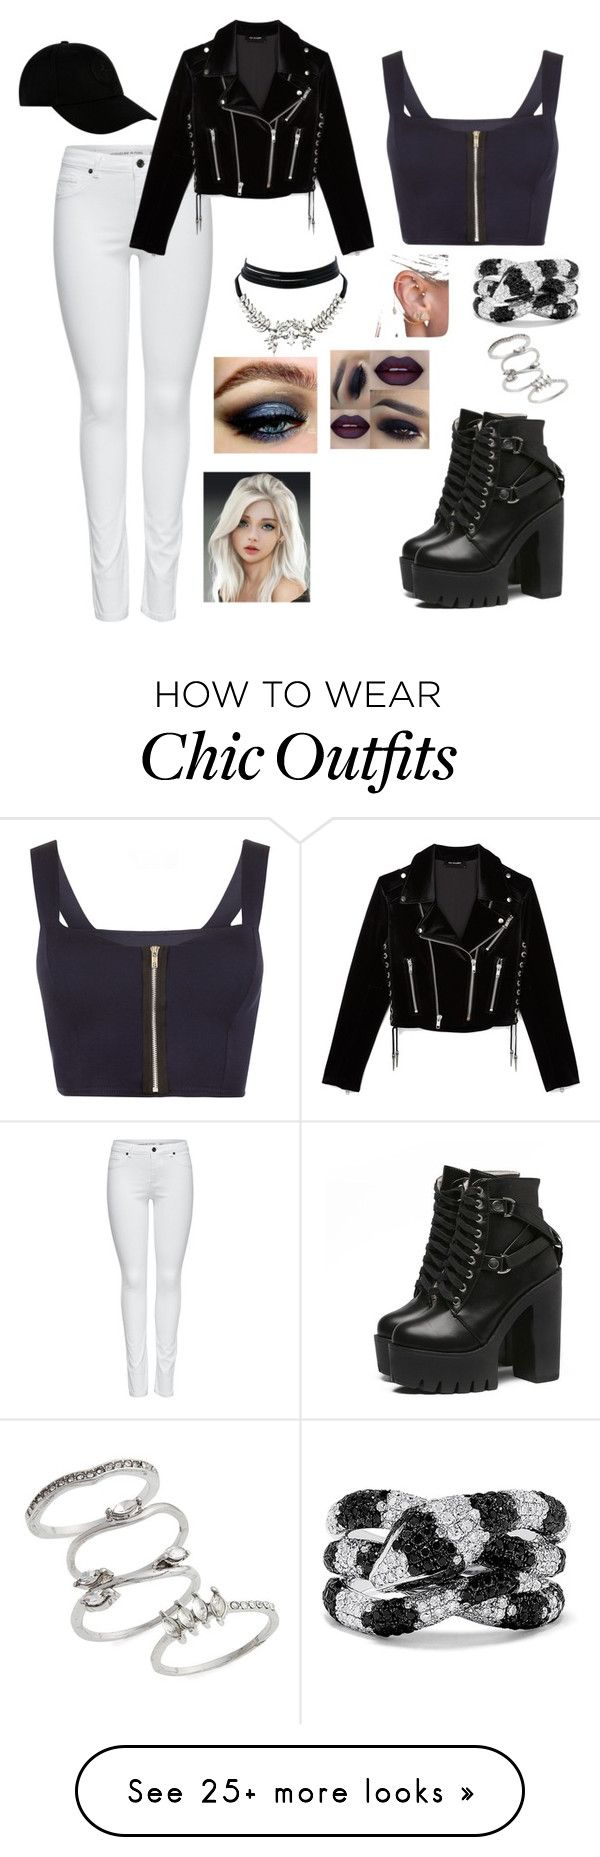 """""""Modern Day Villian"""" by lcobleigh on Polyvore featuring M&Co, The Kooples, WearAll, Effy Jewelry, Topshop, WithChic, STONE ISLAND and modern"""